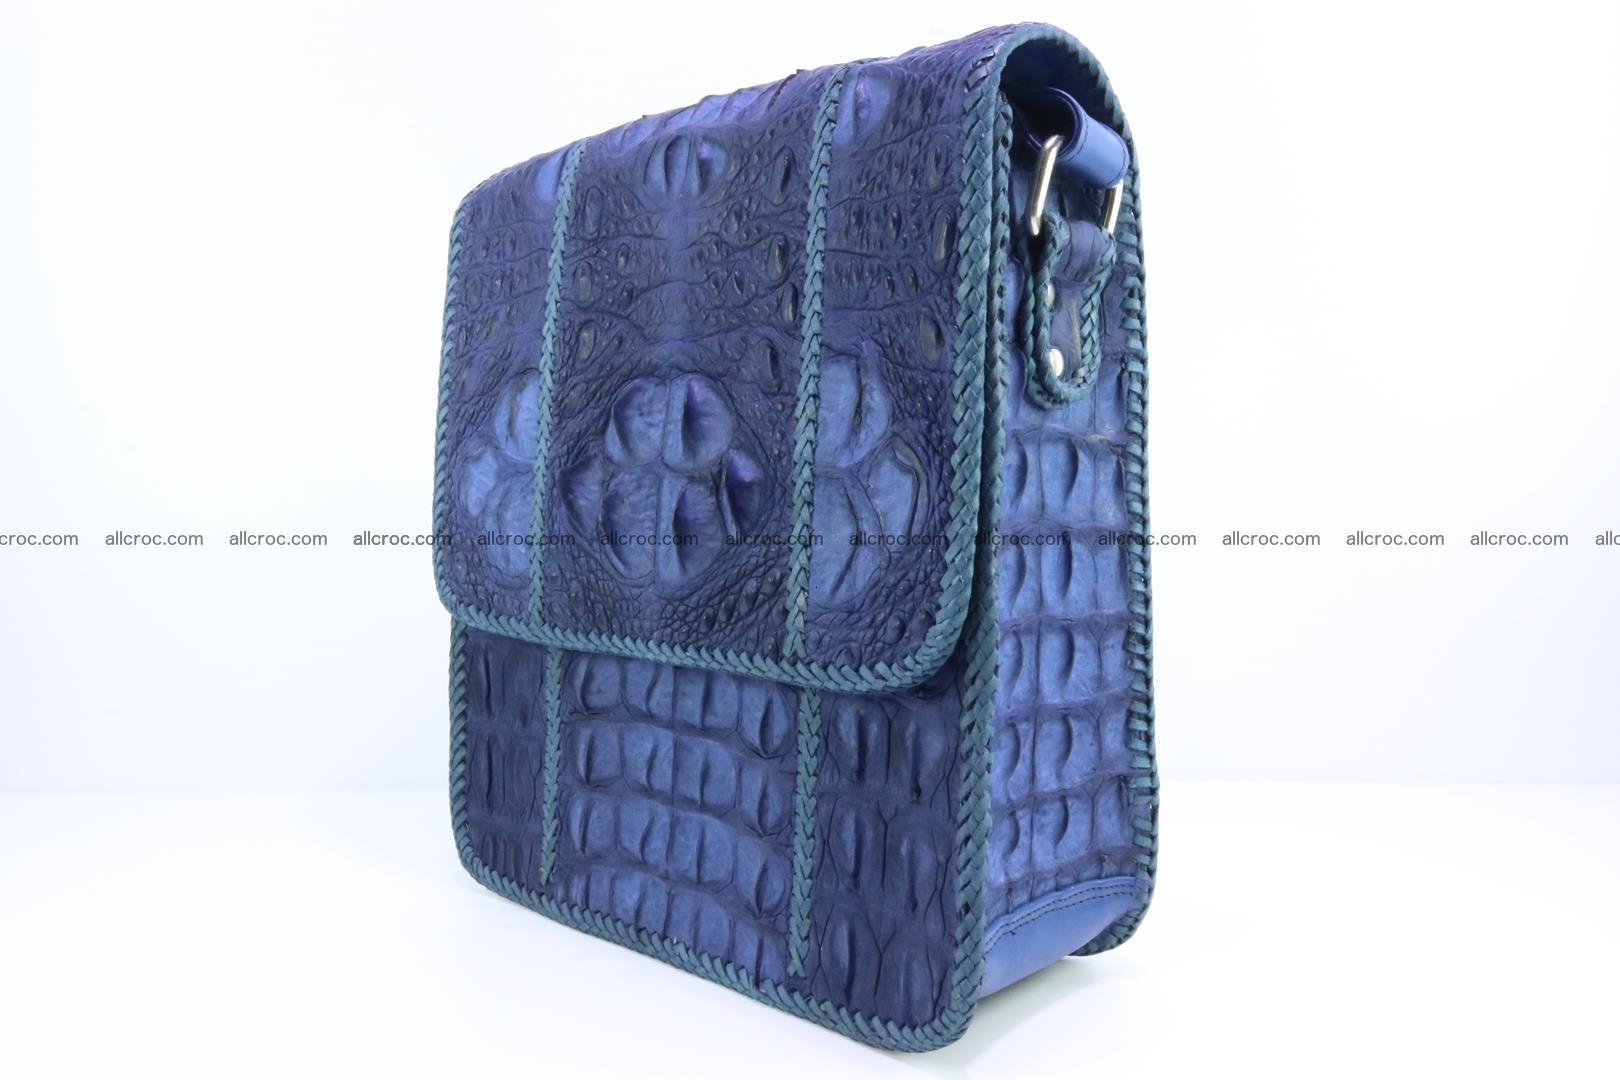 Сrocodile skin shoulder bag with braided edges 140 Foto 2